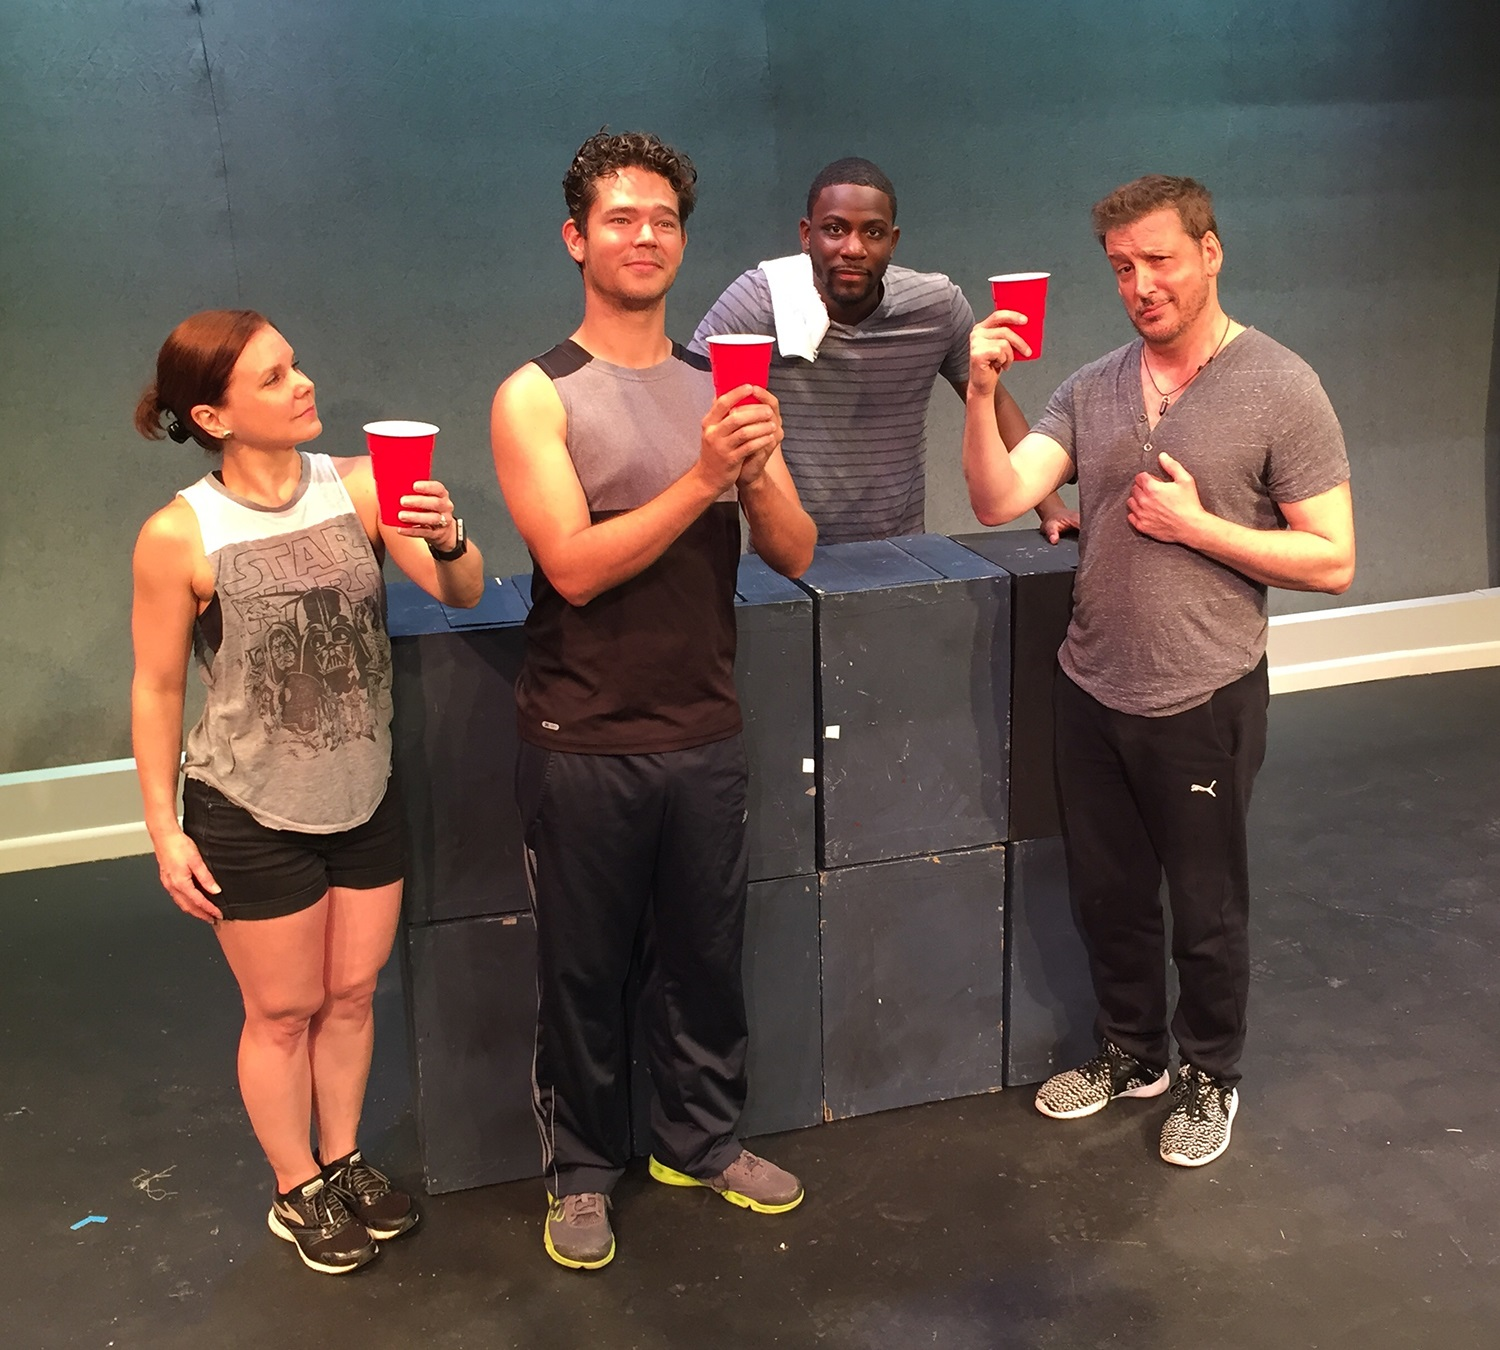 BWW Review: SHORTS GONE WILD 5 at City Theatre And Island City Stage